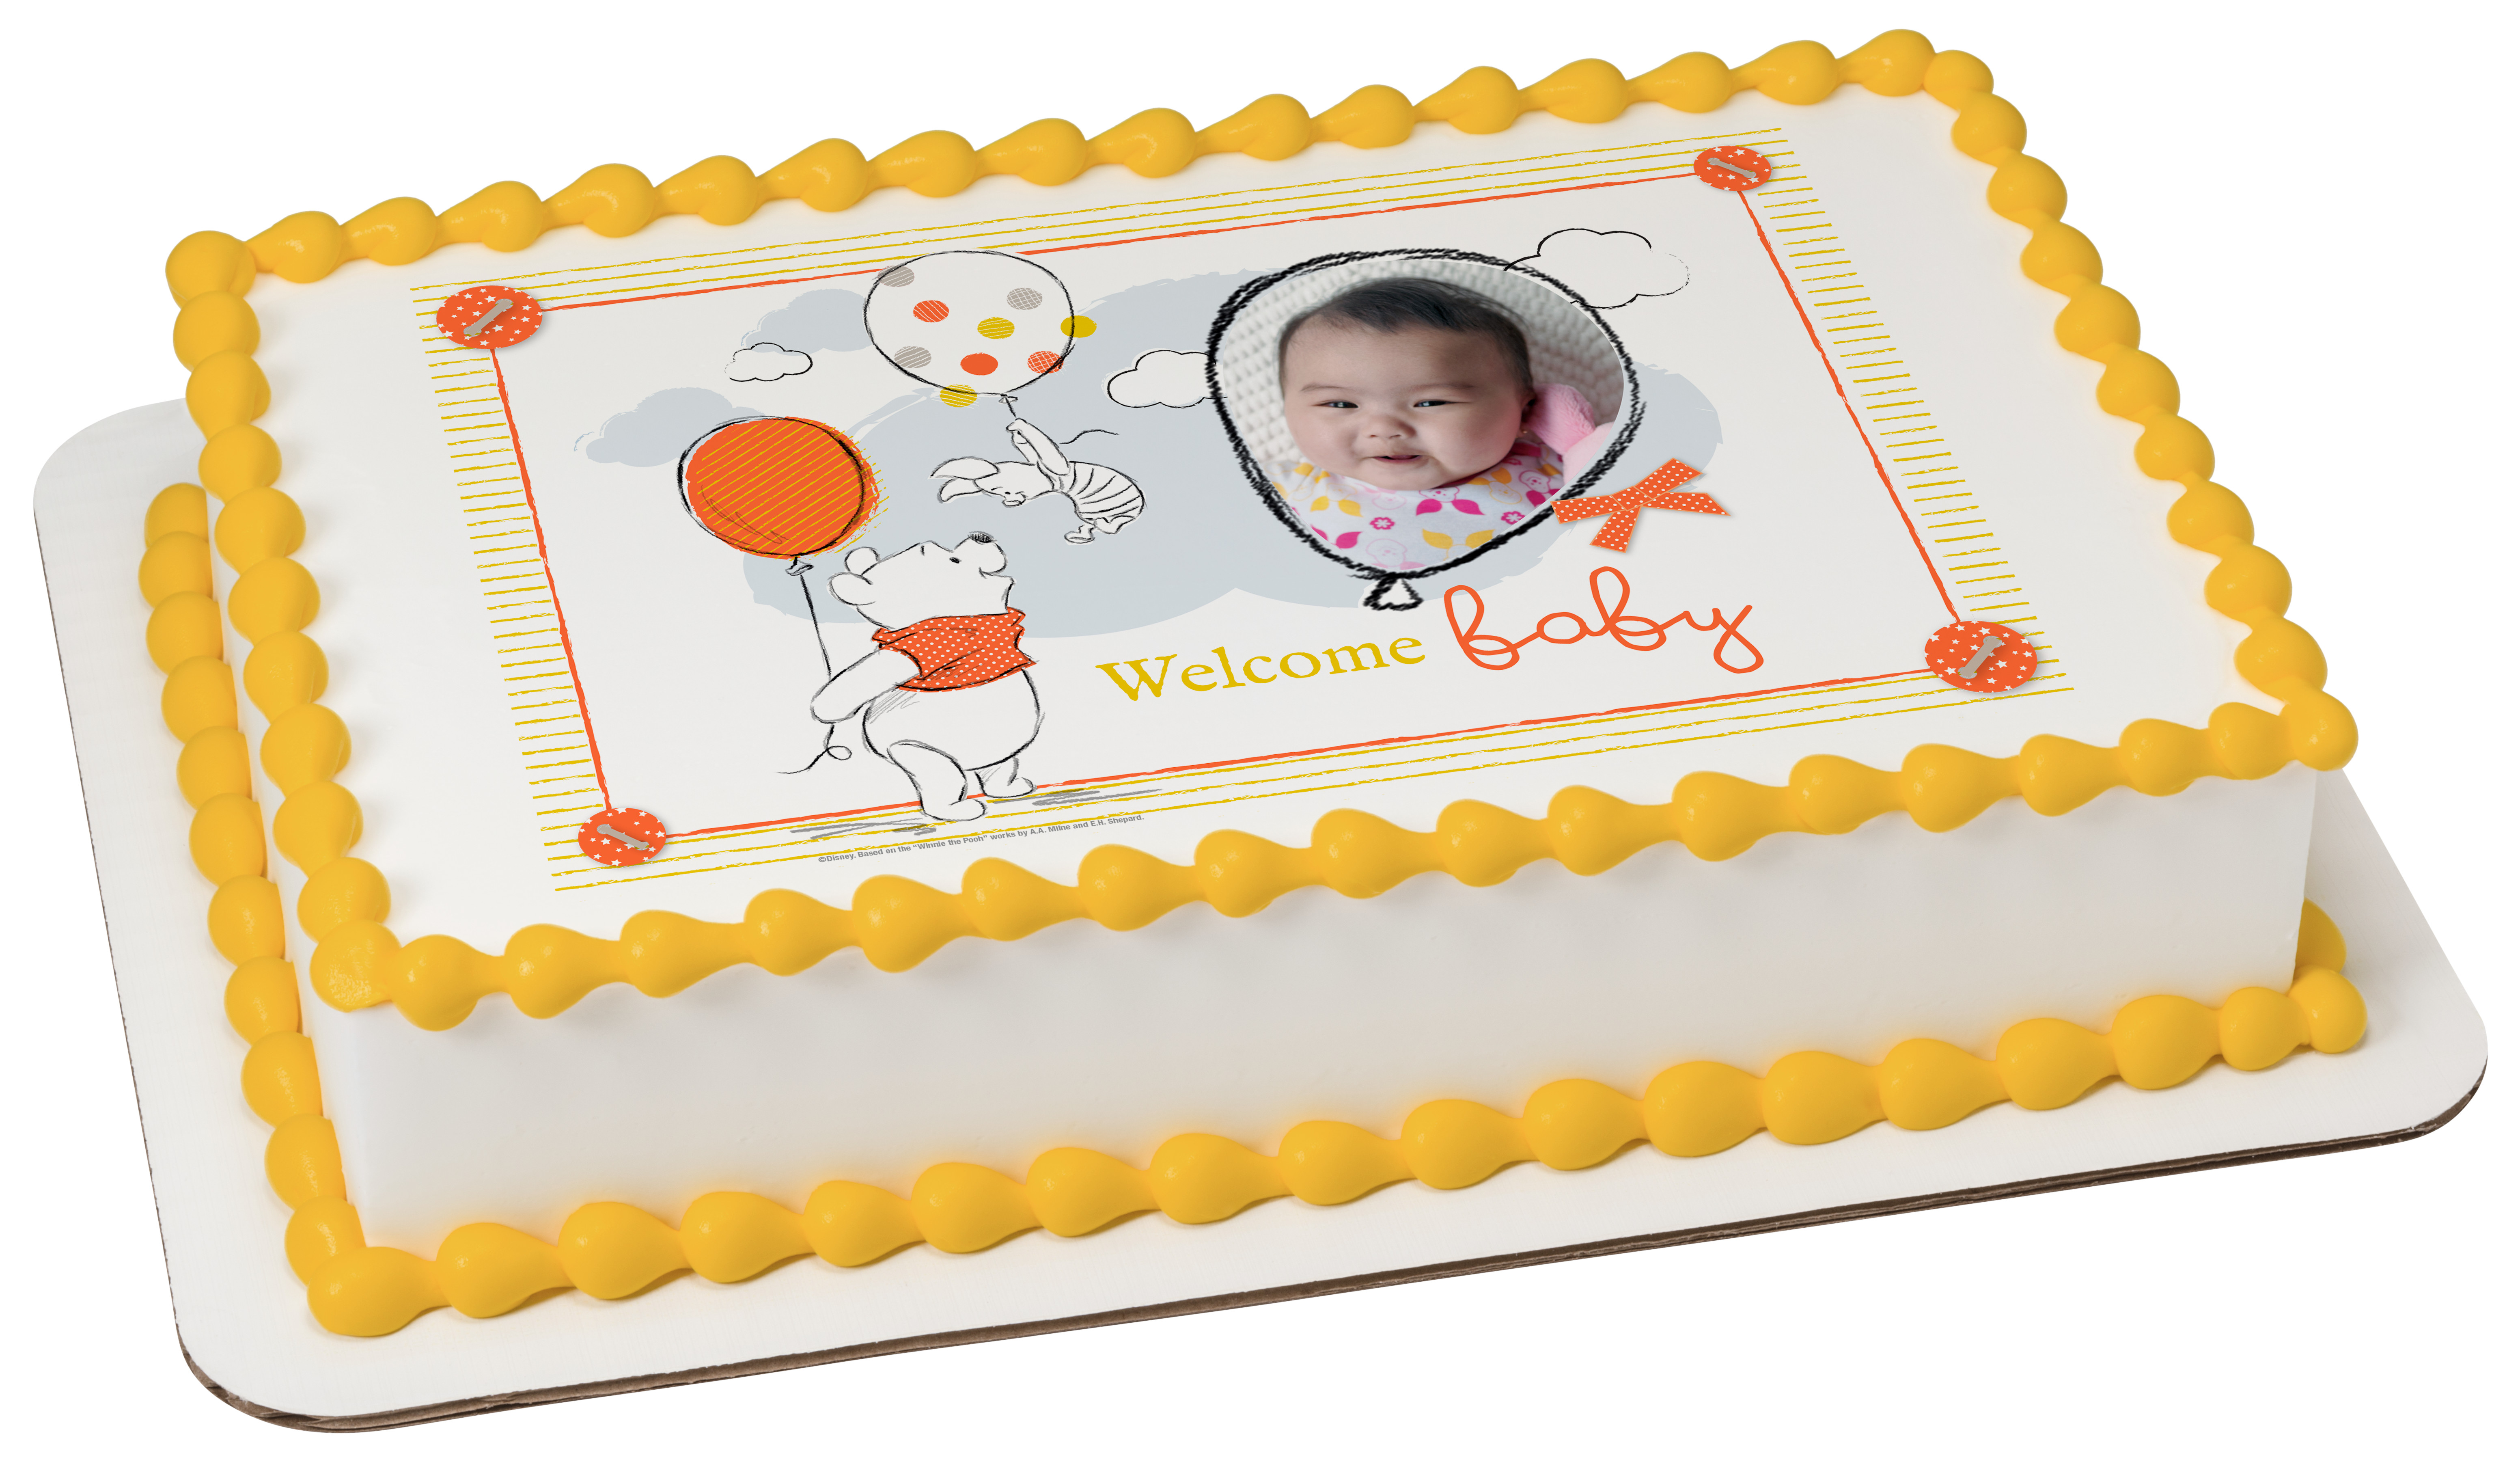 Winnie The Pooh Welcome Baby Photocake 174 Edible Image